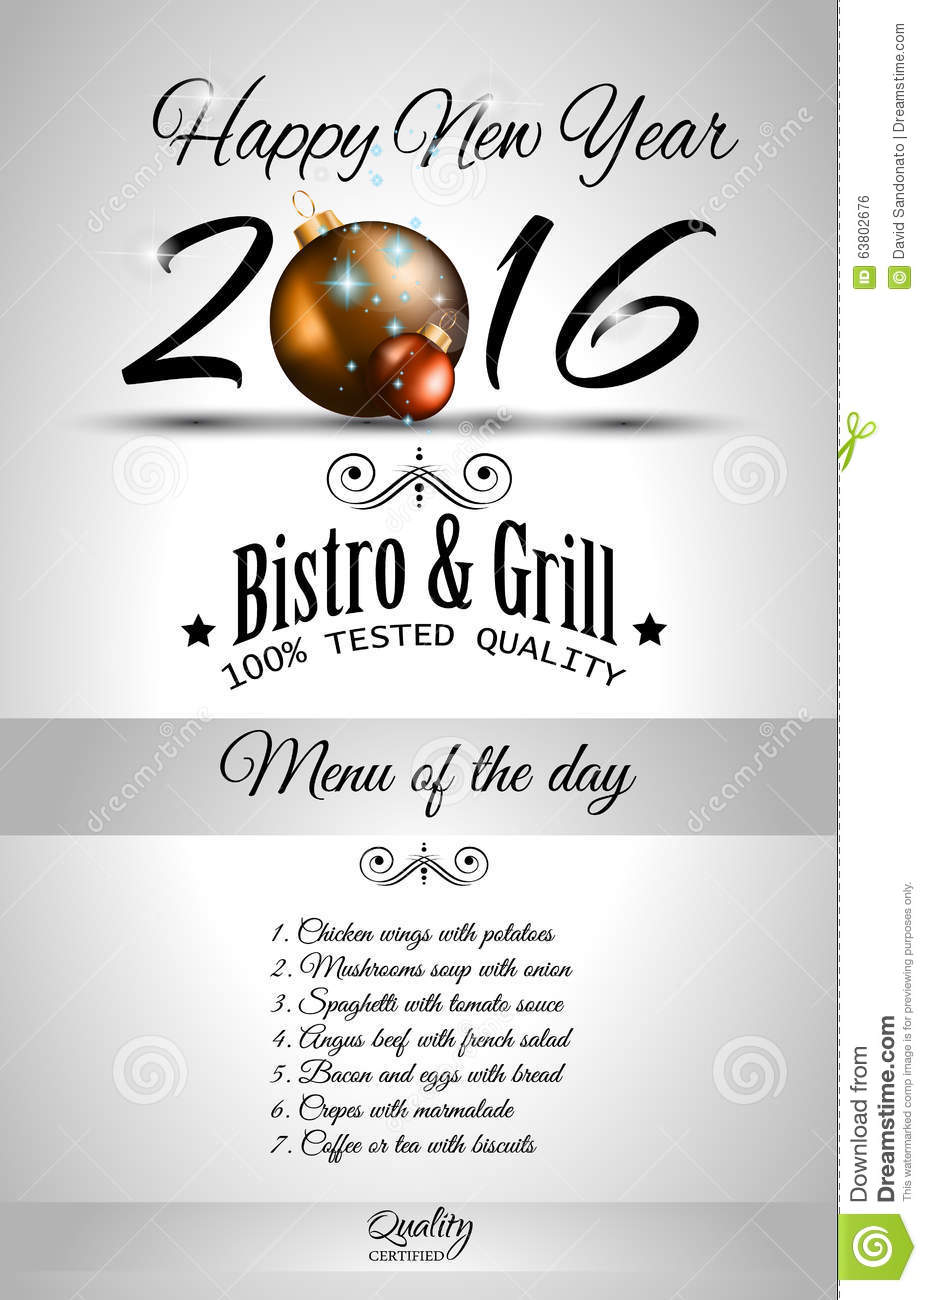 2016 happy new year restaurant menu template